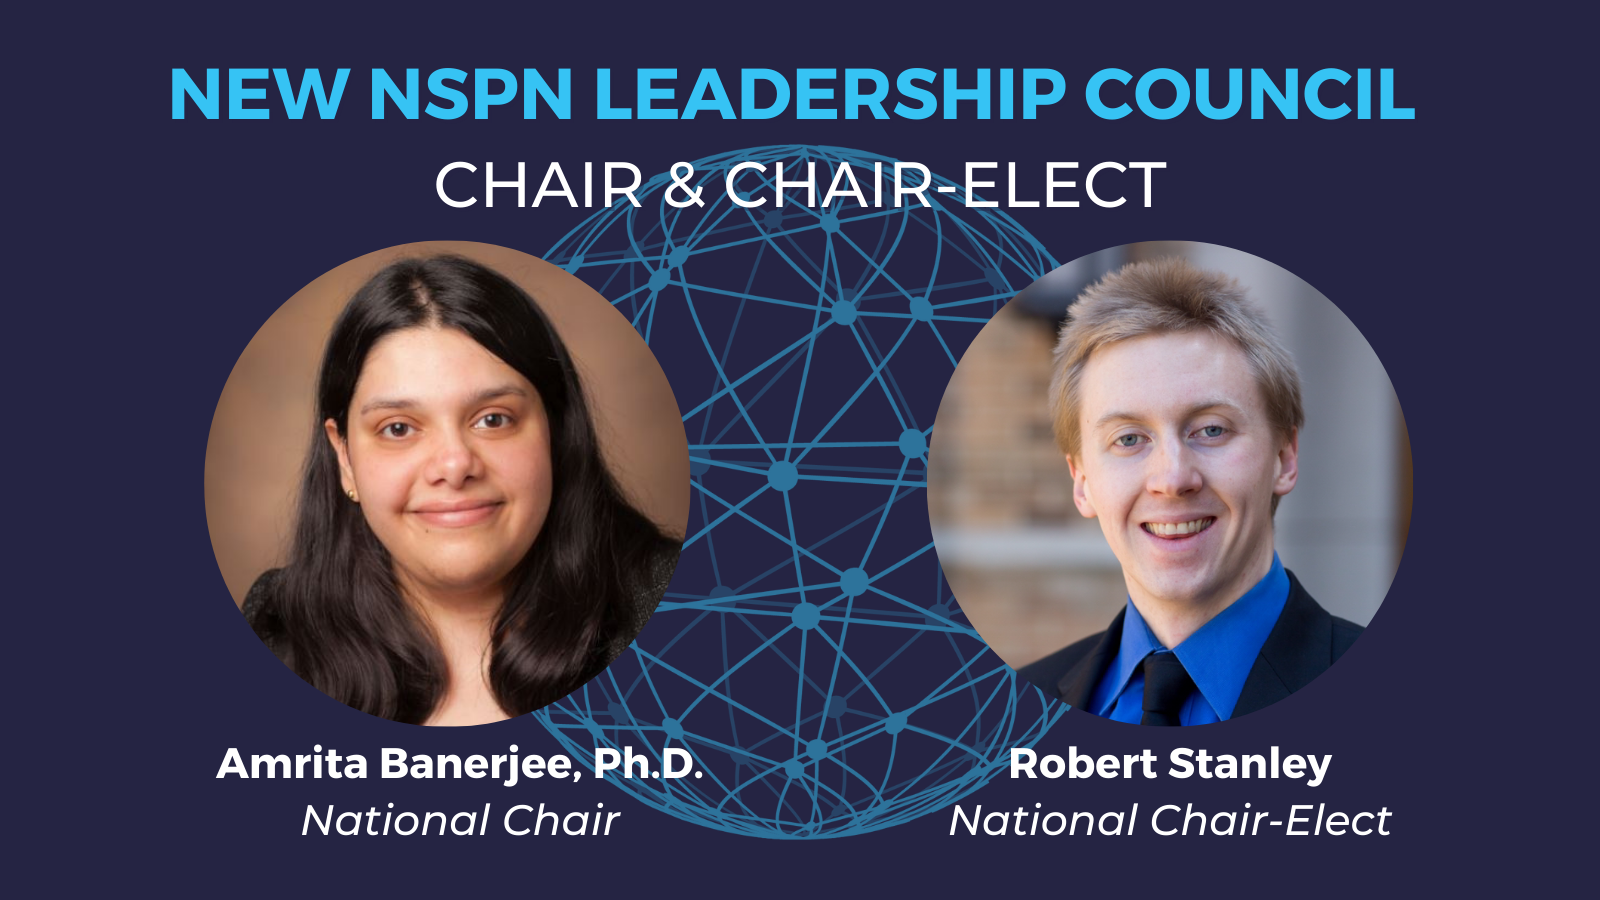 A blue interconnected globe sits in the background behind headshots of Amrita Banerjee and Robert Stanley. Text reads: New NSPN Leadership Council, Chair and Chair-Elect. Amrita Banerjee, Ph.D., National Chair. Robert Stanley, National Chair-Elect.